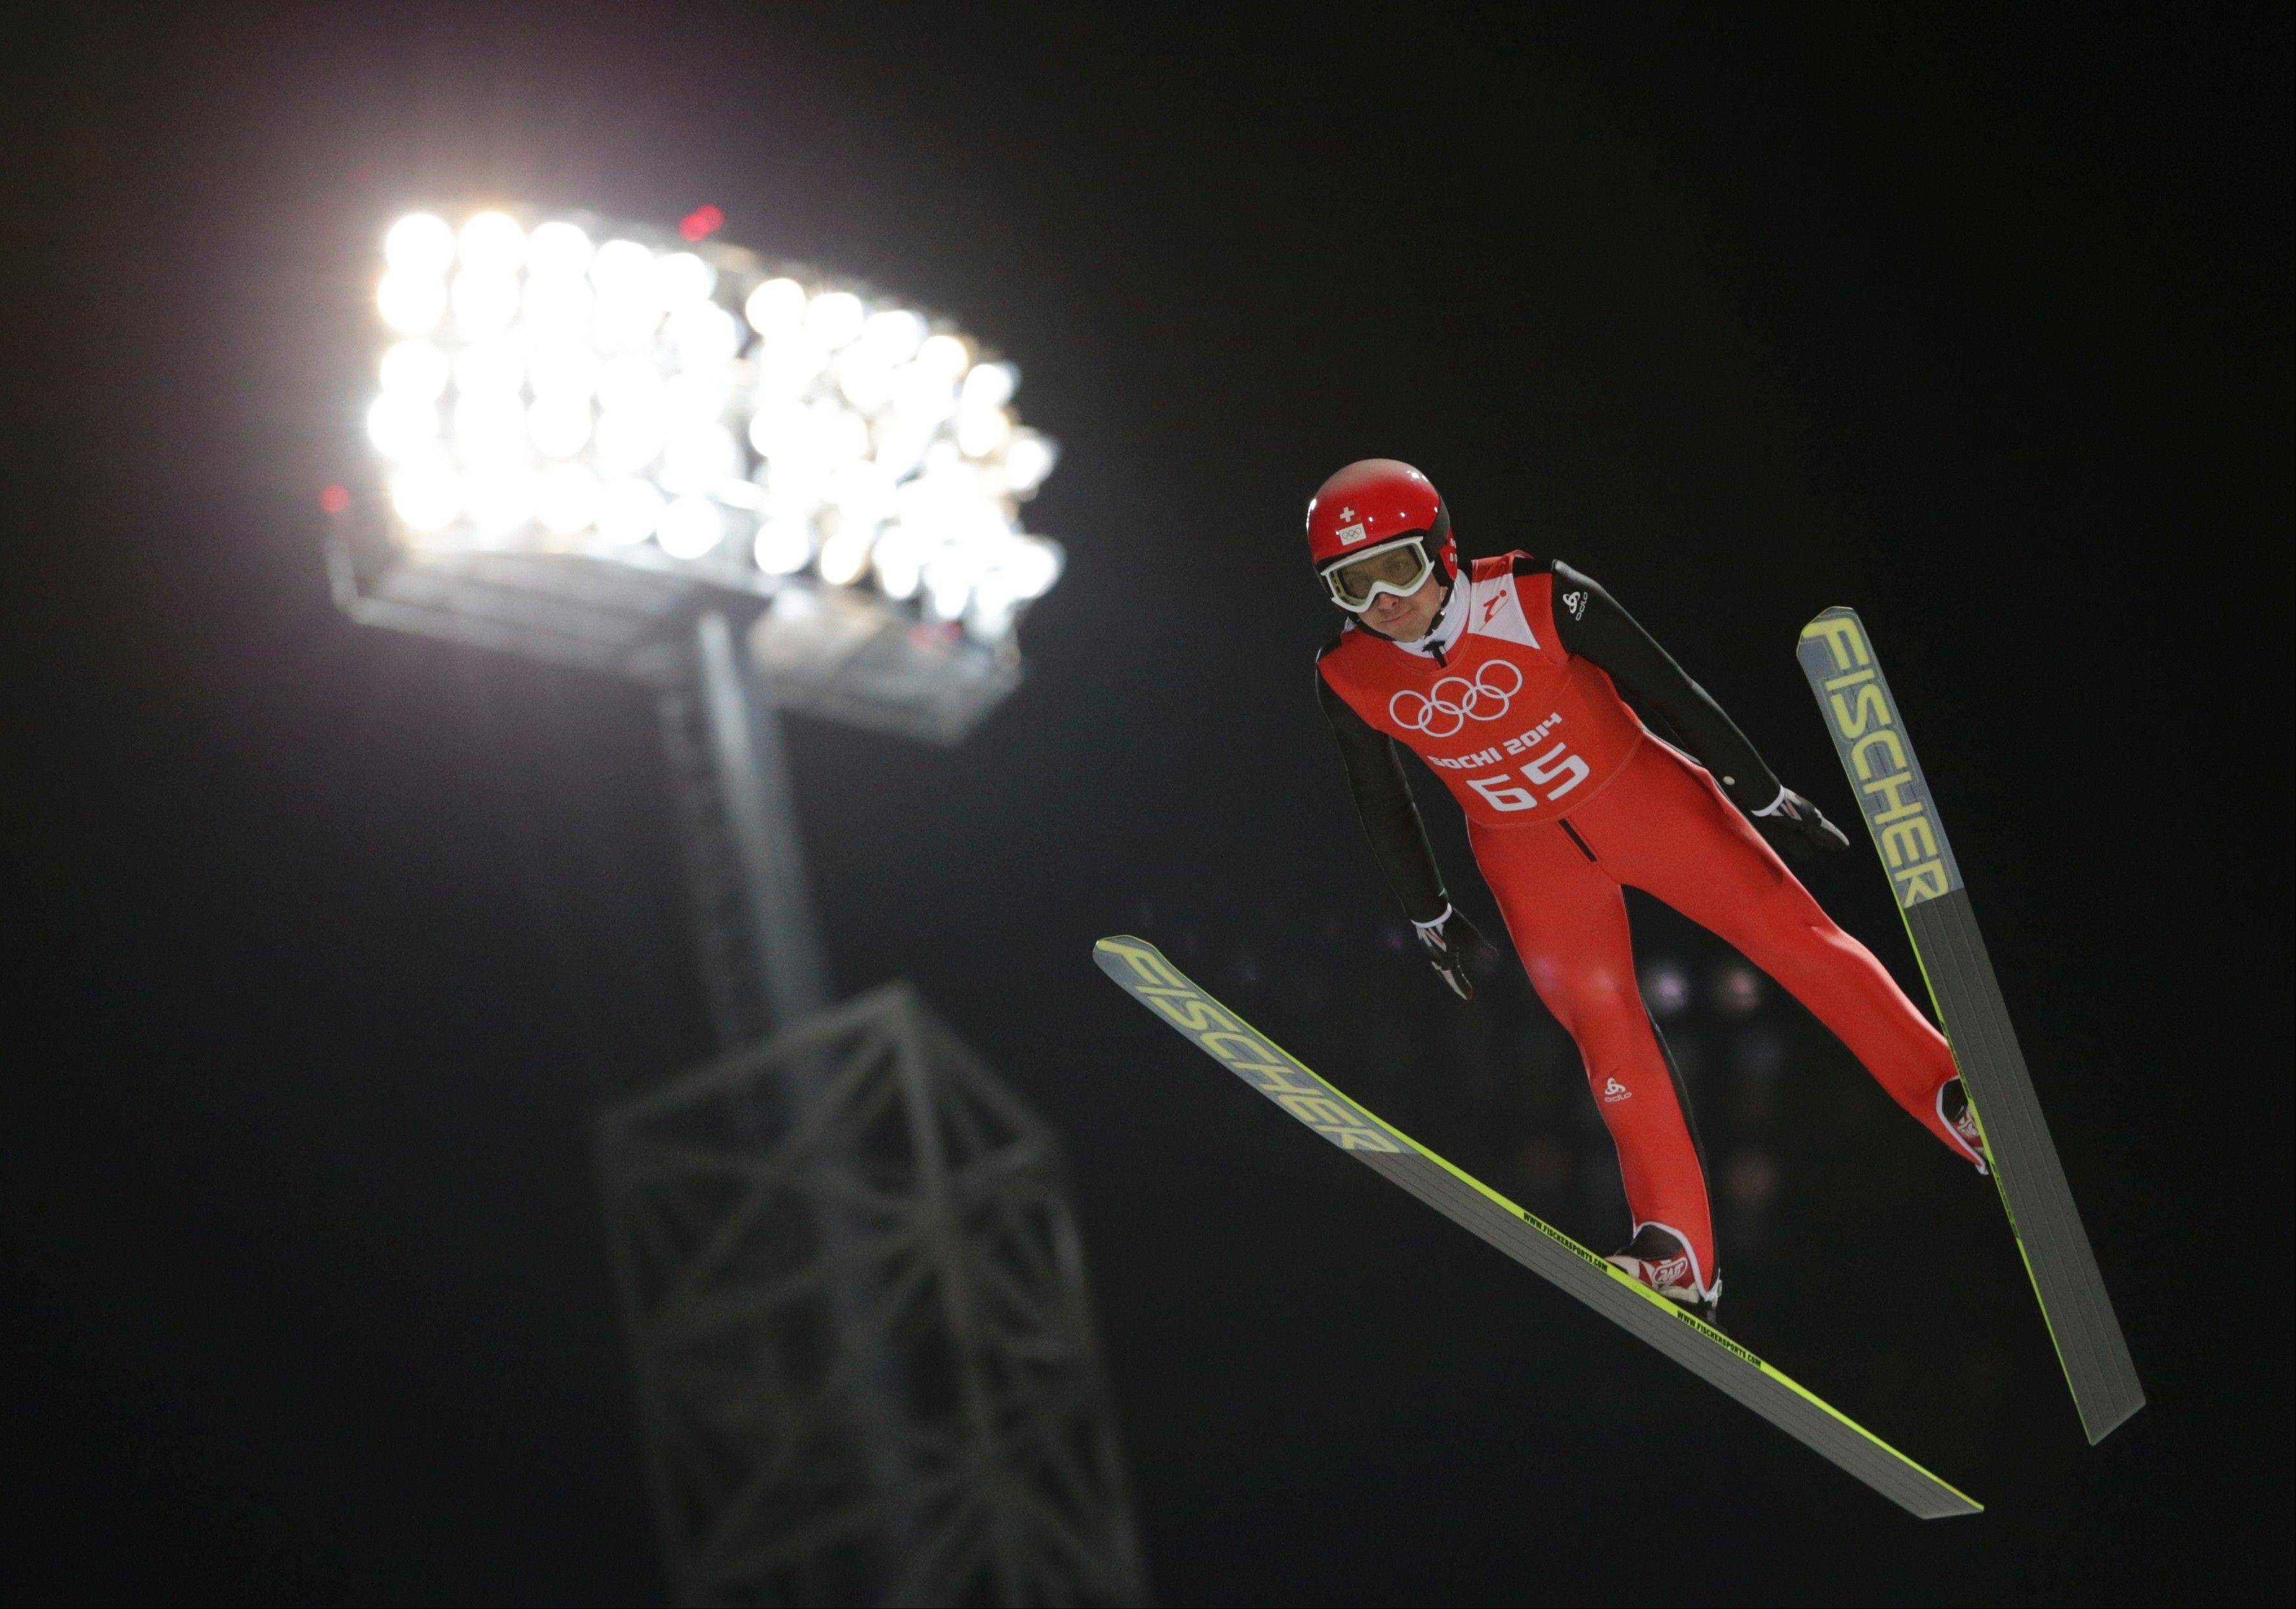 Switzerland's Simon Ammann makes an attempt from the normal hill during the men's ski jumping training at the 2014 Winter Olympics, Thursday, Feb. 6, 2014, in Krasnaya Polyana, Russia.